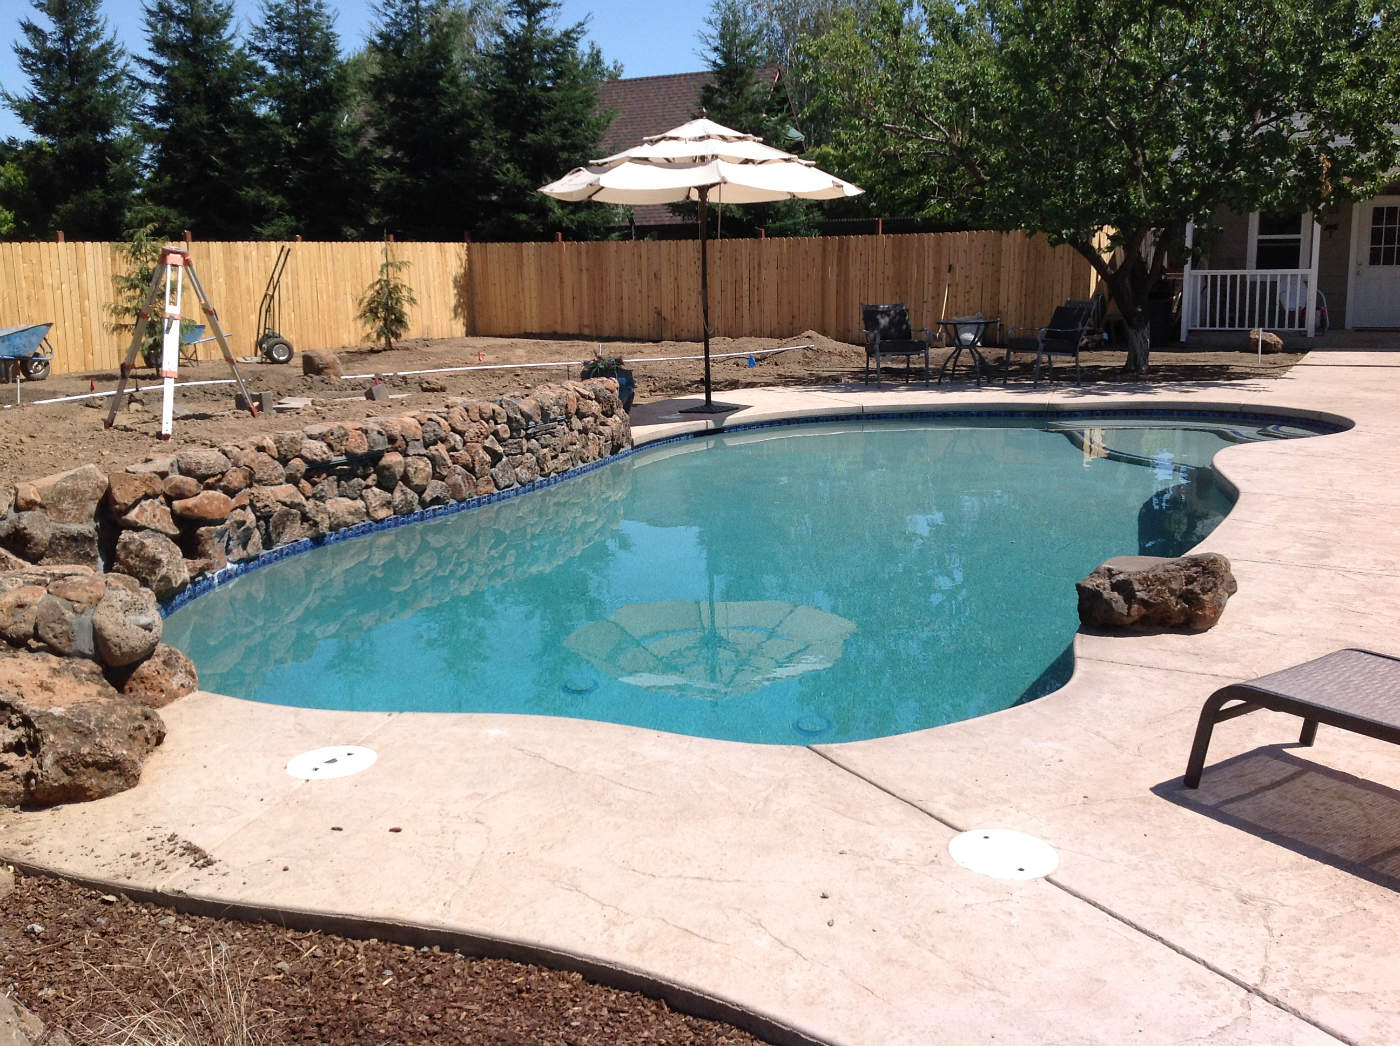 Freeform Pool #35. Category Gunite Pools